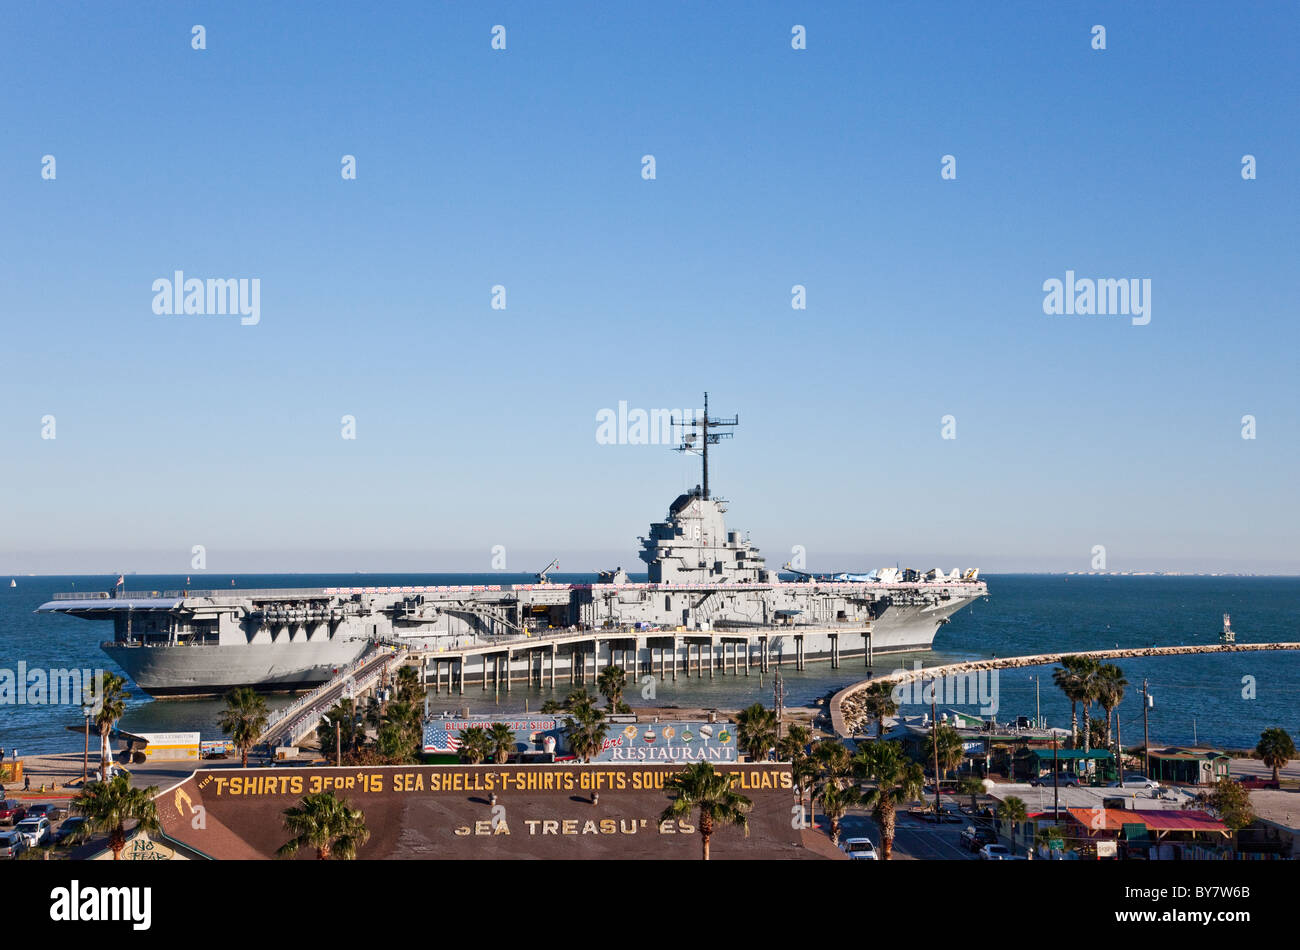 USS Lexington CV16, WW2 aircraft carrier - Stock Image